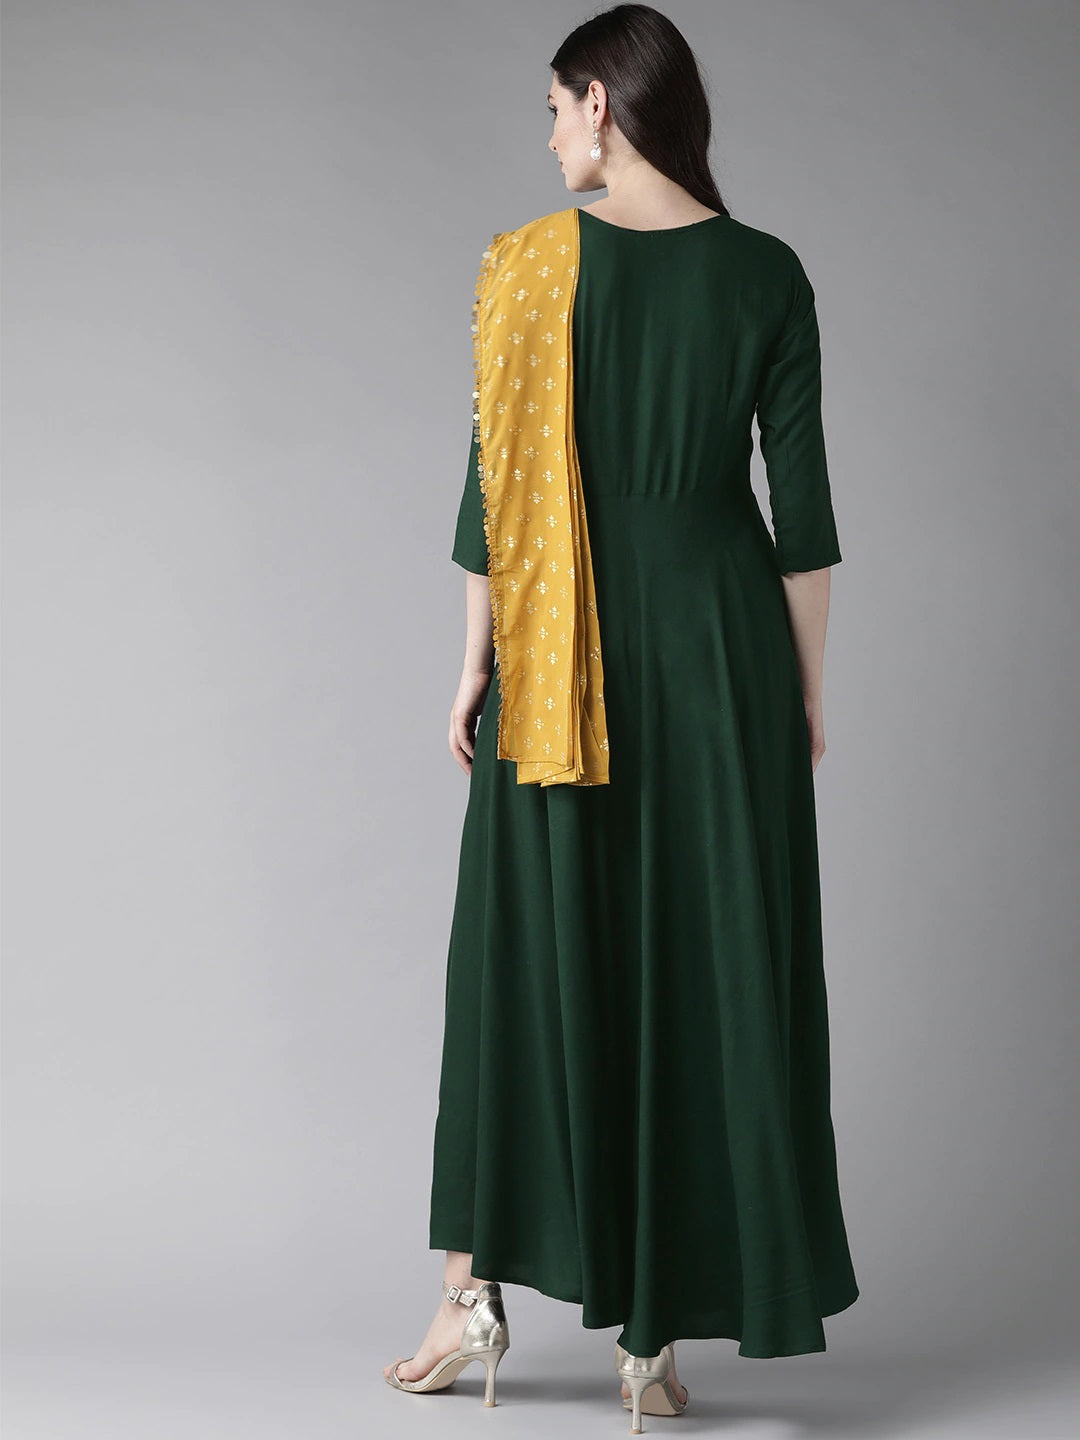 Green & Mustard Yellow Solid Maxi Dress With Attached Dupatta